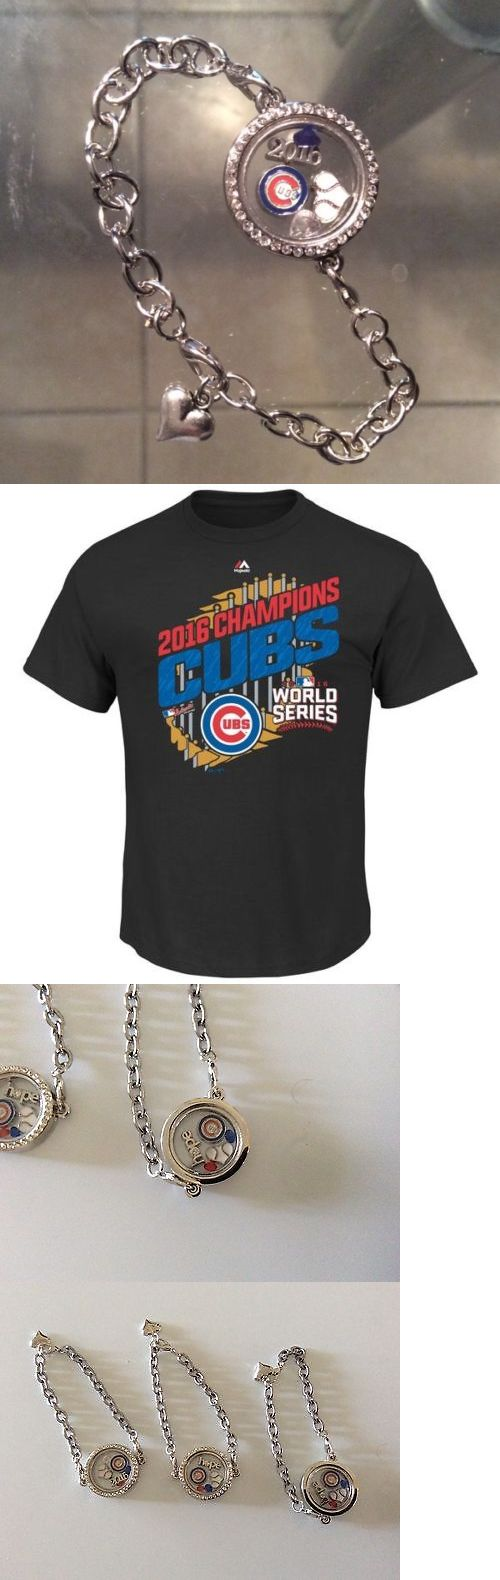 Other Baseball Clothing and Accs 159062: Chicago Cubs 8 Charm Bracelet And Brand New Cubs 2016 World Champions T Shirt -> BUY IT NOW ONLY: $34.99 on eBay!